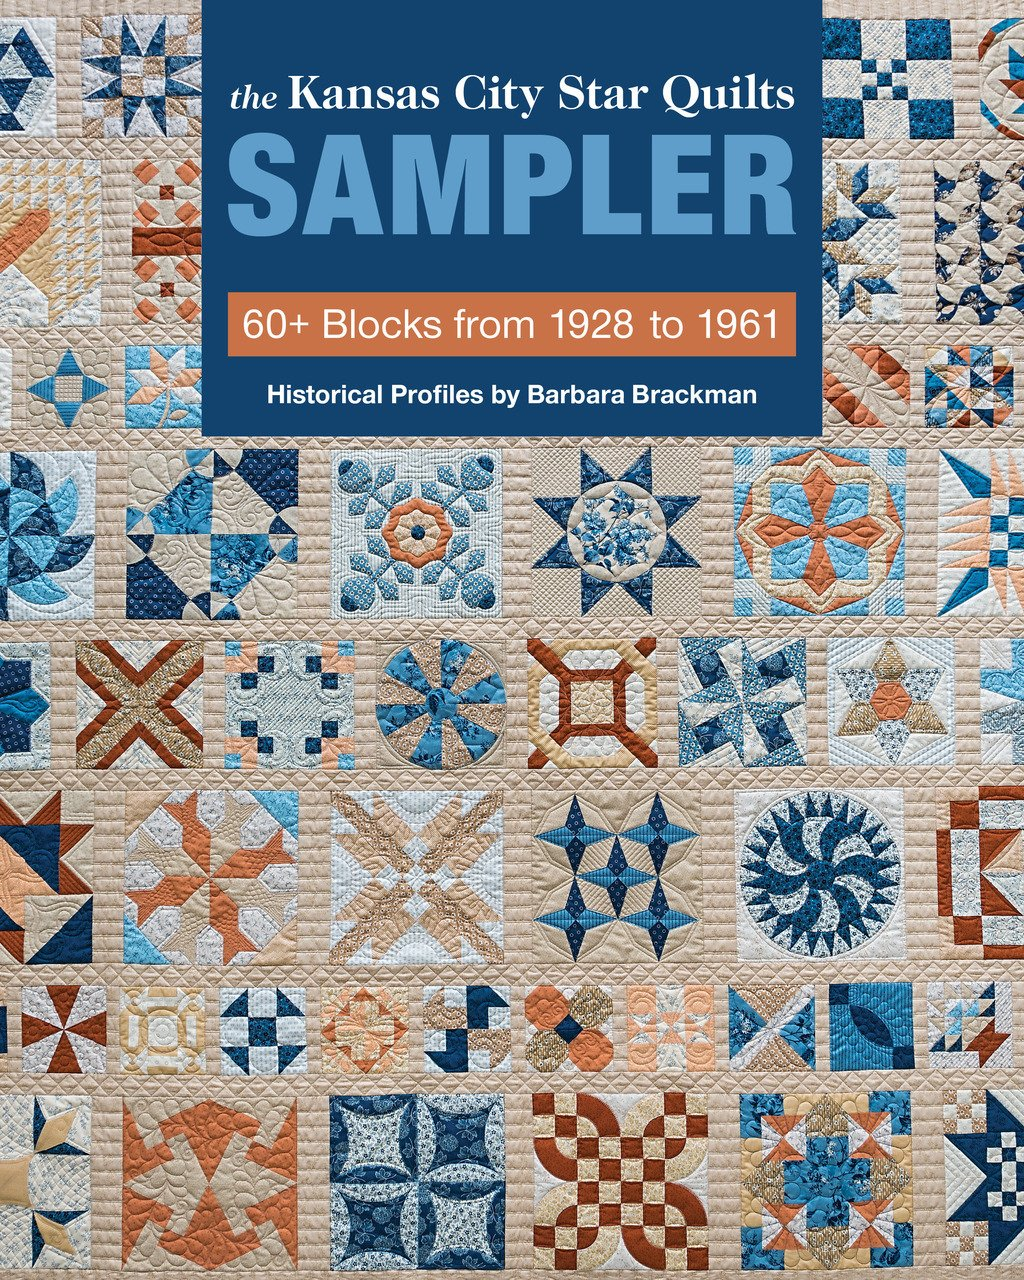 Book. Kansas City Star Quilt Sampler by Barbara Blackman